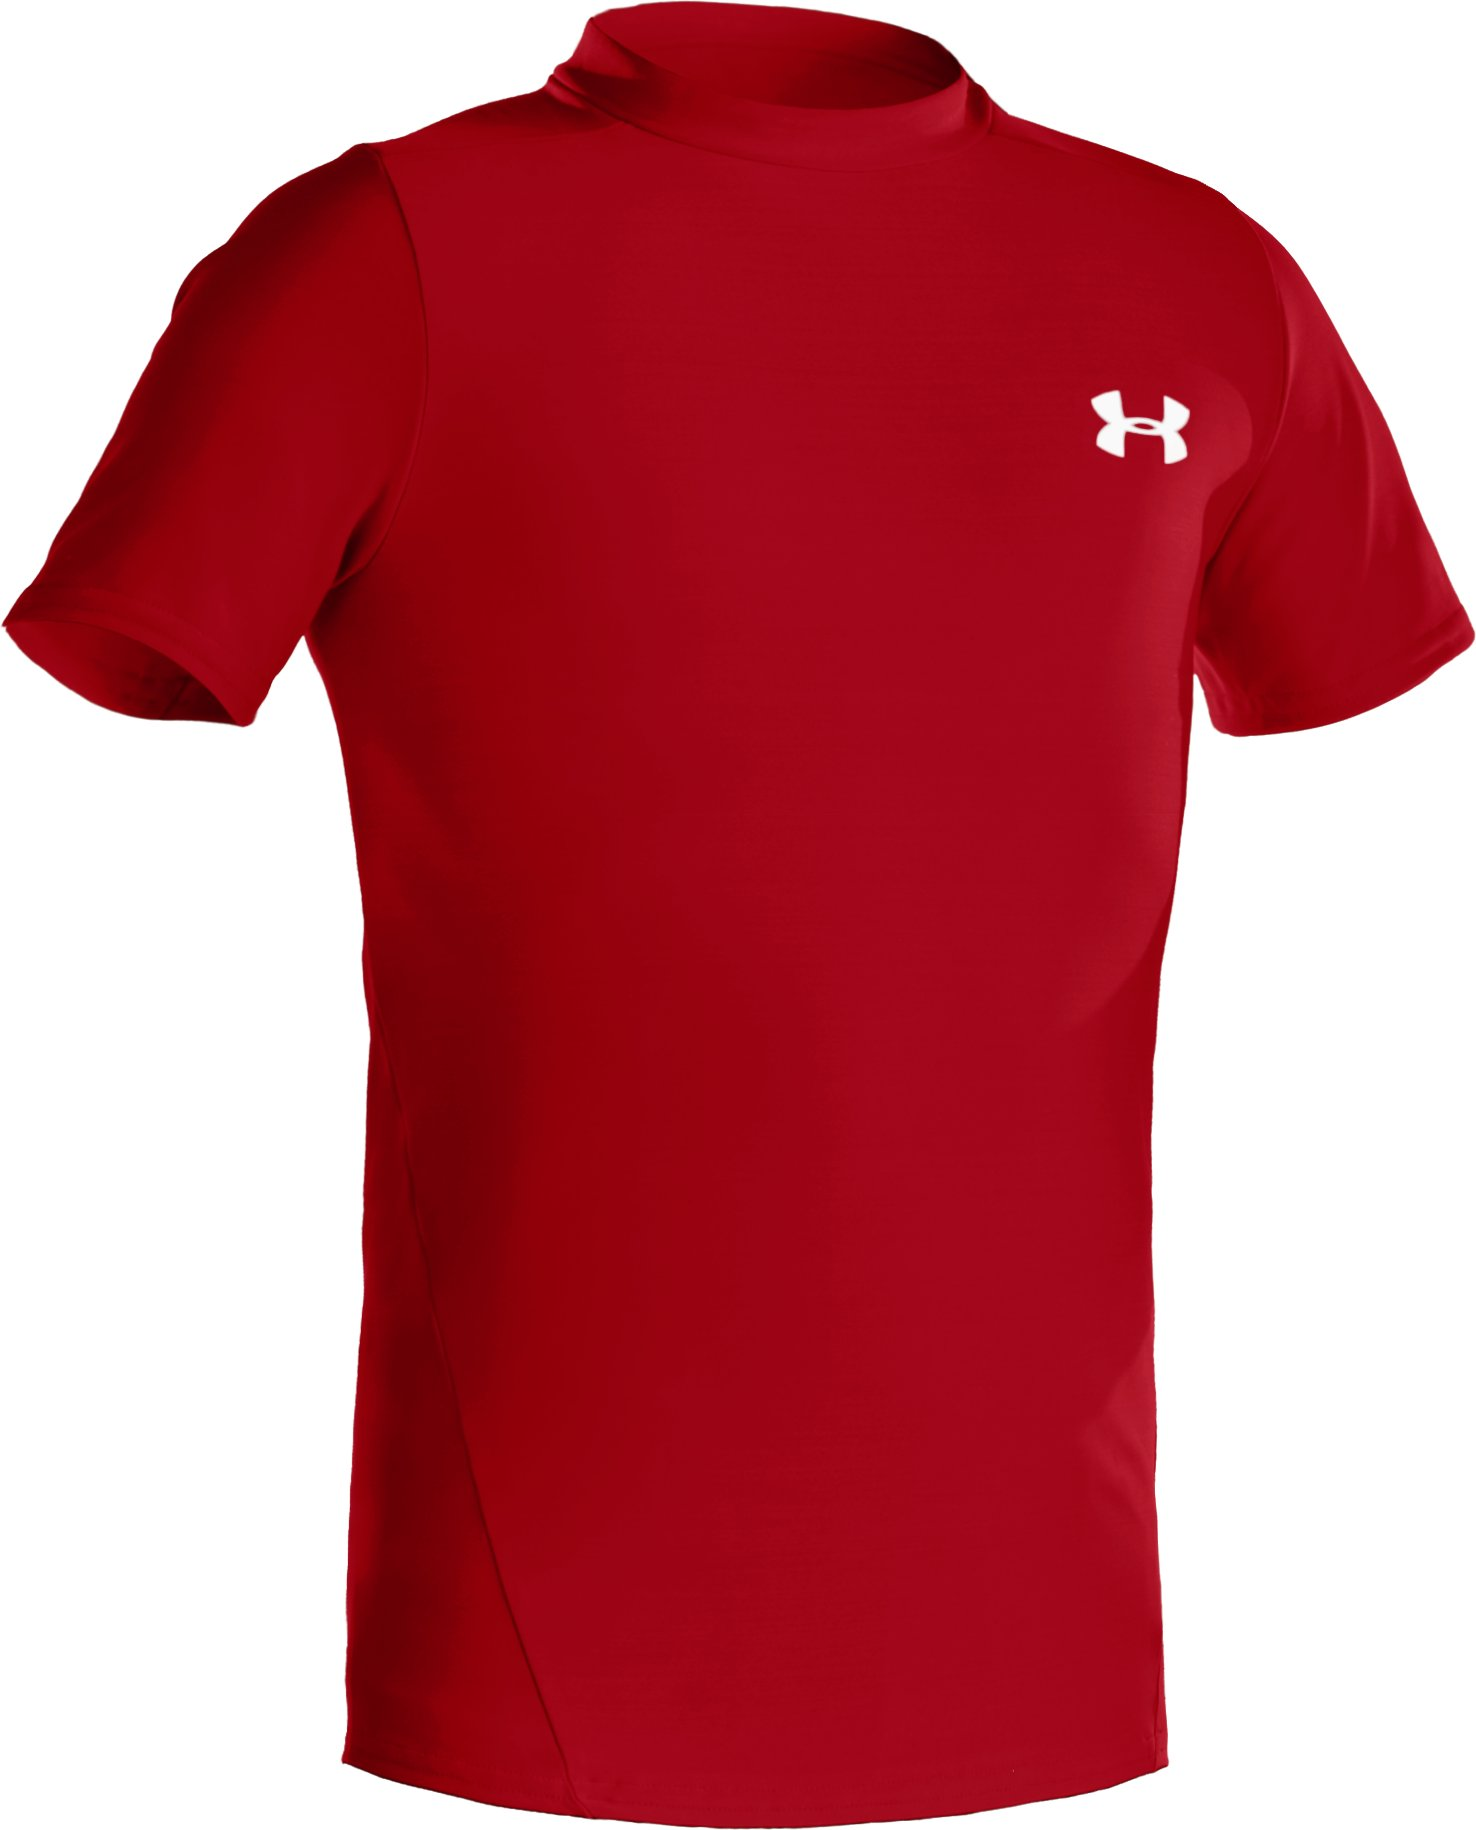 Boys' Short Sleeve HeatGear® T-Shirt II, Red